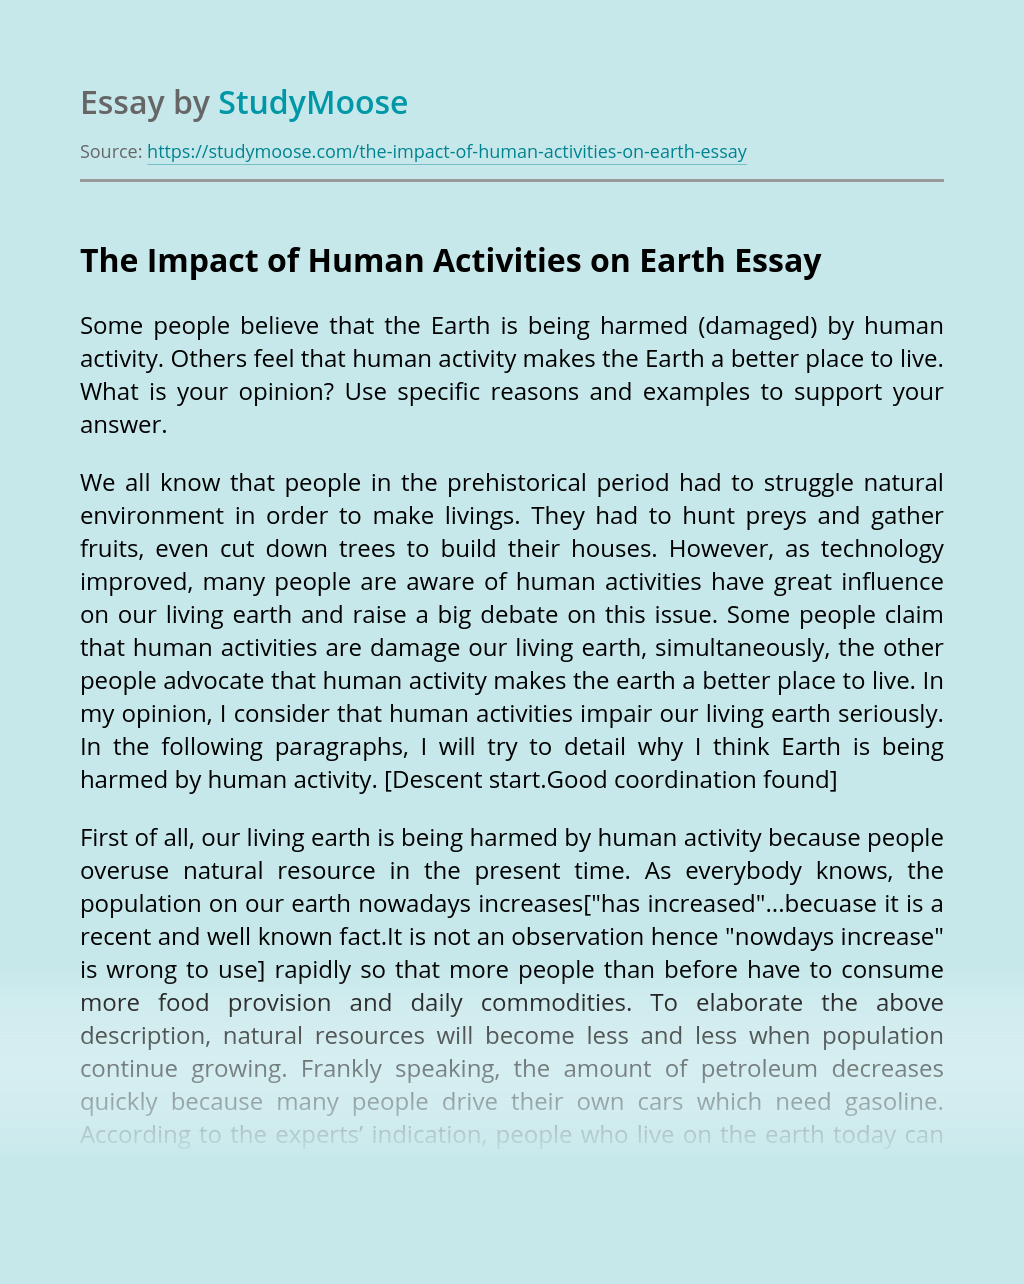 The Impact of Human Activities on Earth